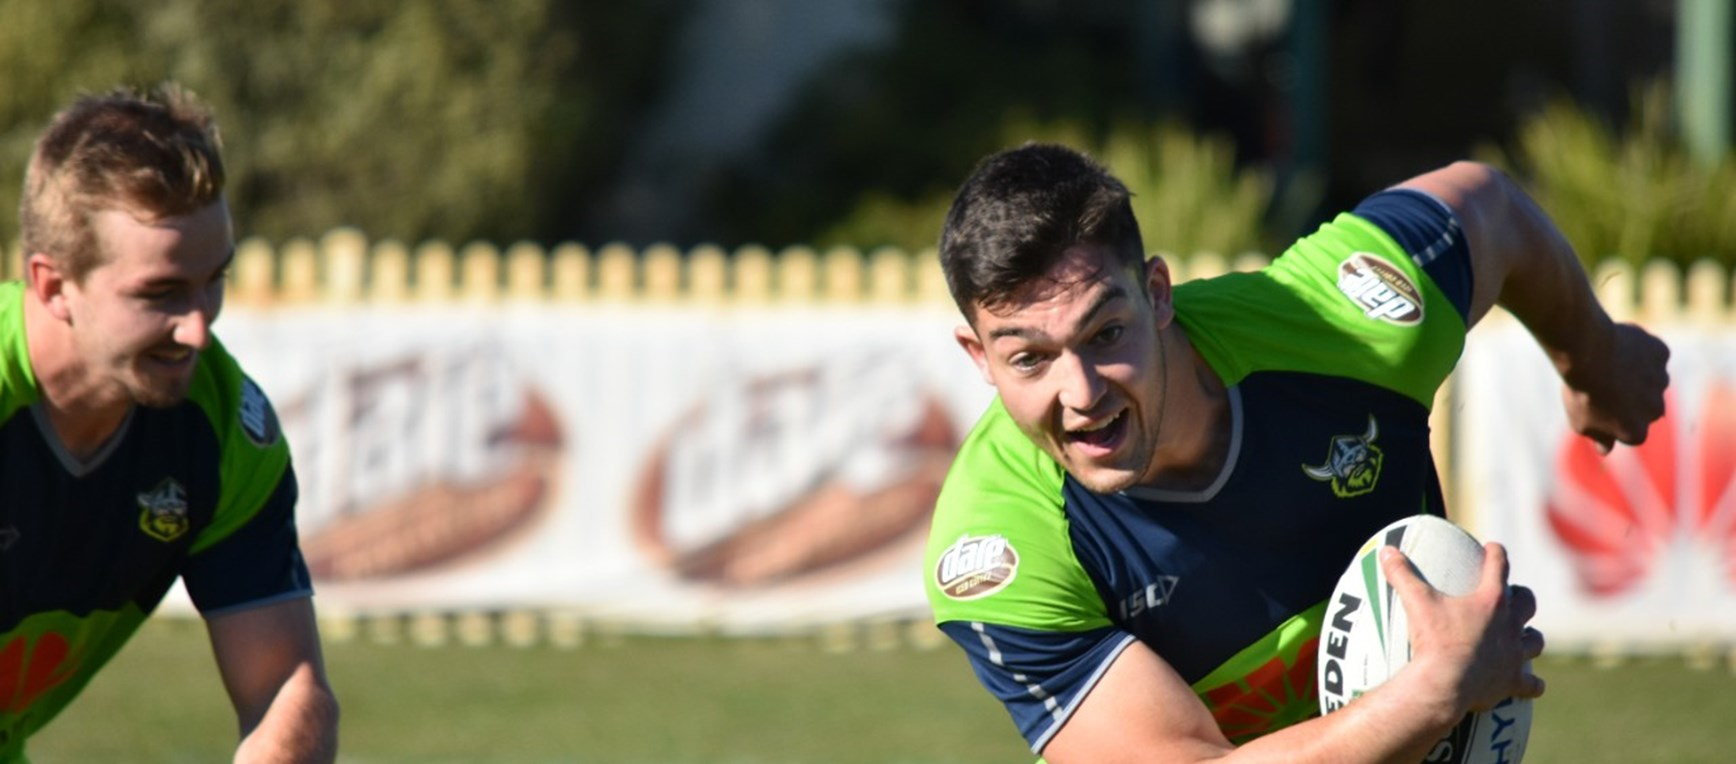 Gallery: Raiders prepare for Sharks